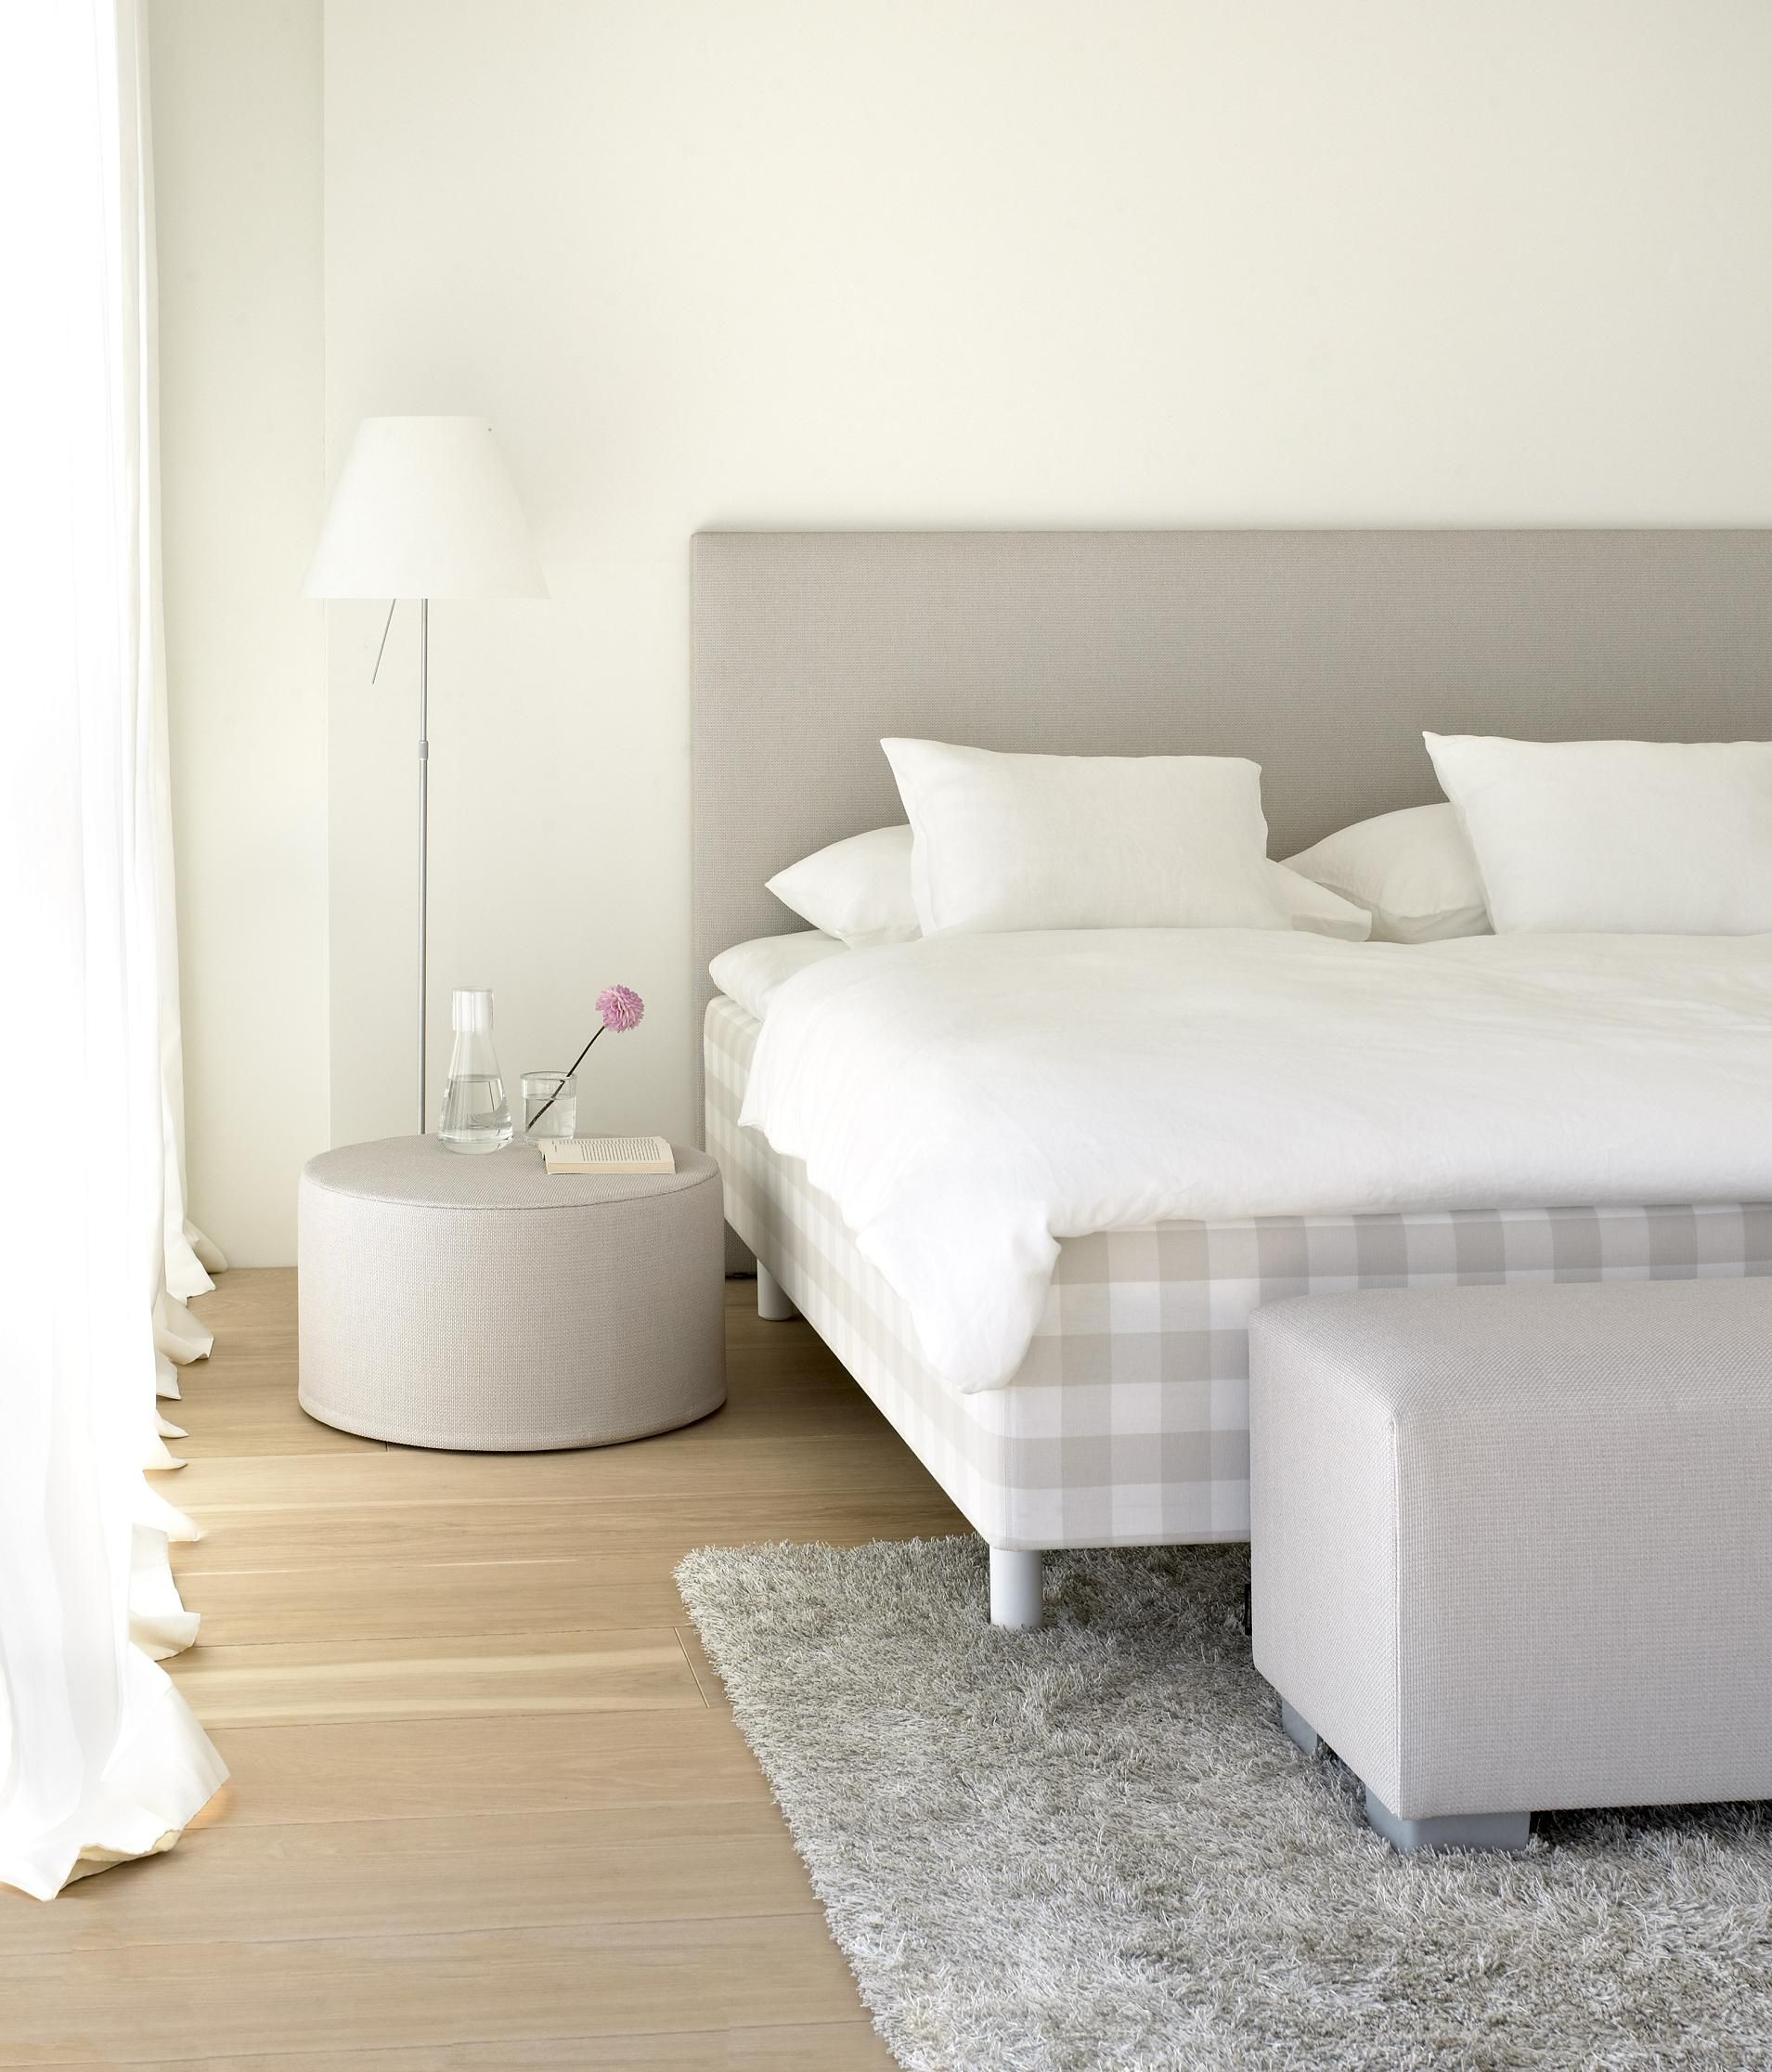 hastens superia is our most sophisticated frame bed inside its